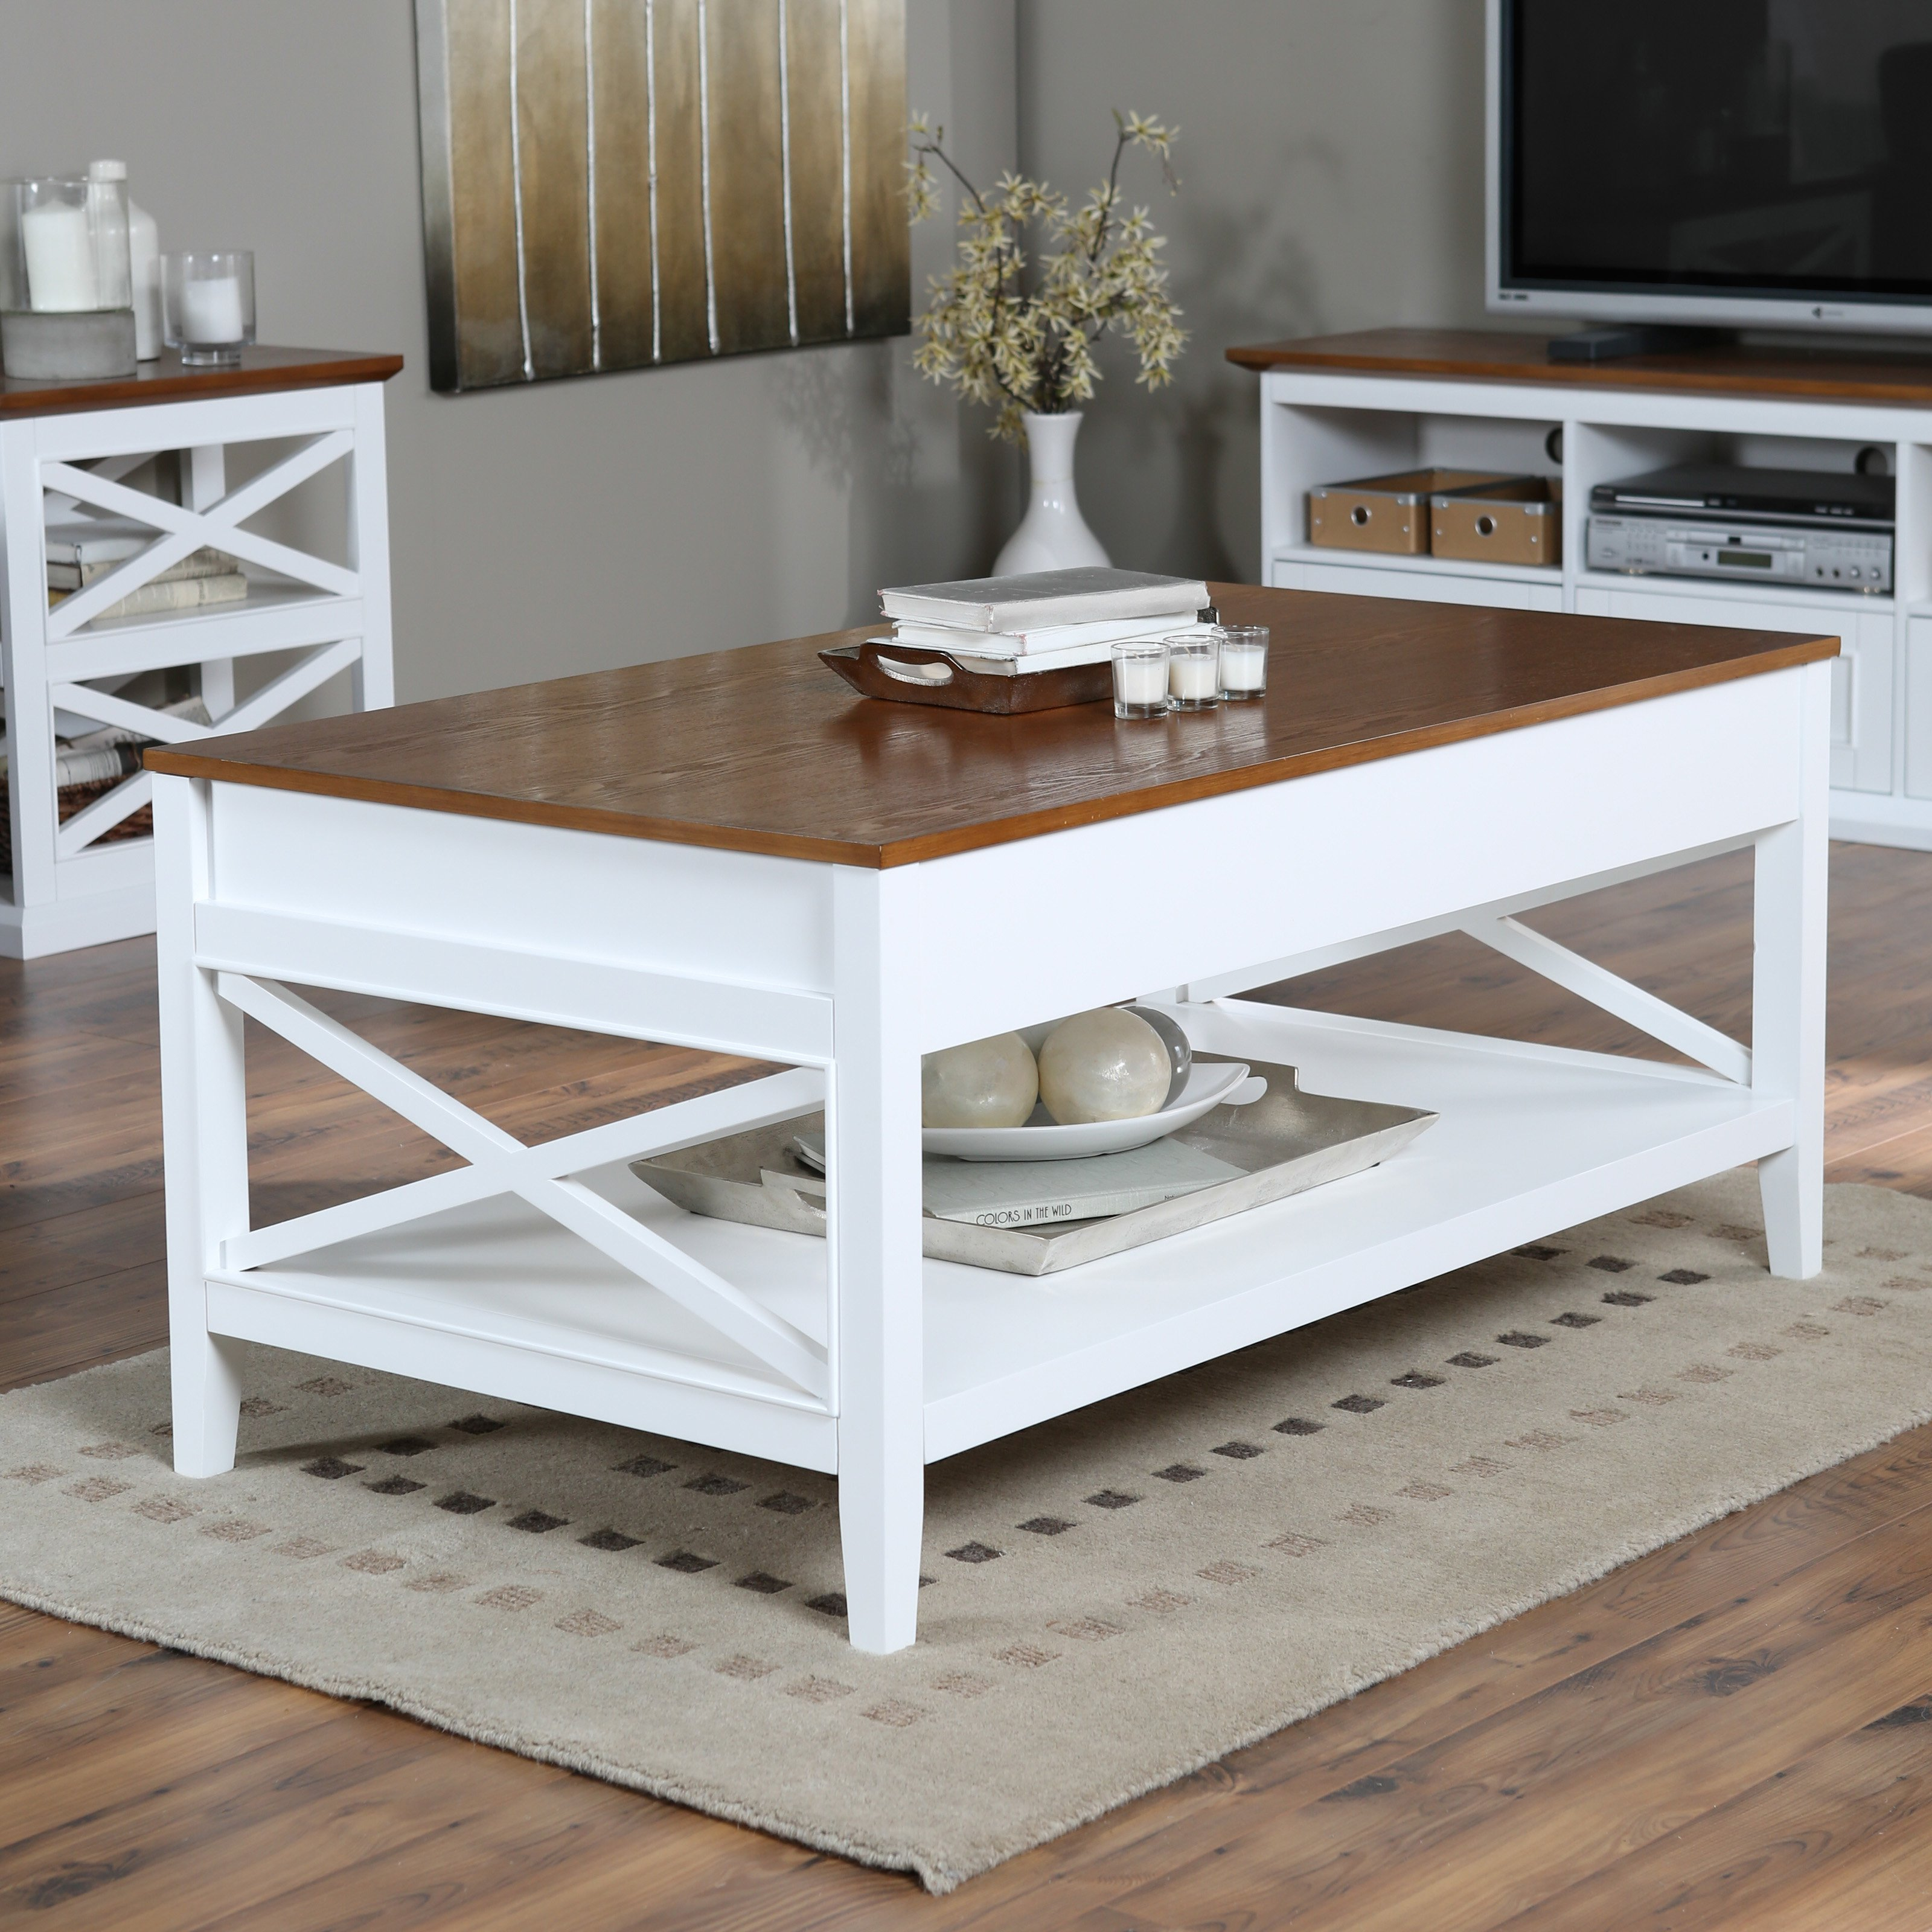 white coffee table wooden top design ideas belham living hampton lift oak master end small side plans rustic wedding decorations black marble dark off tables half round modern